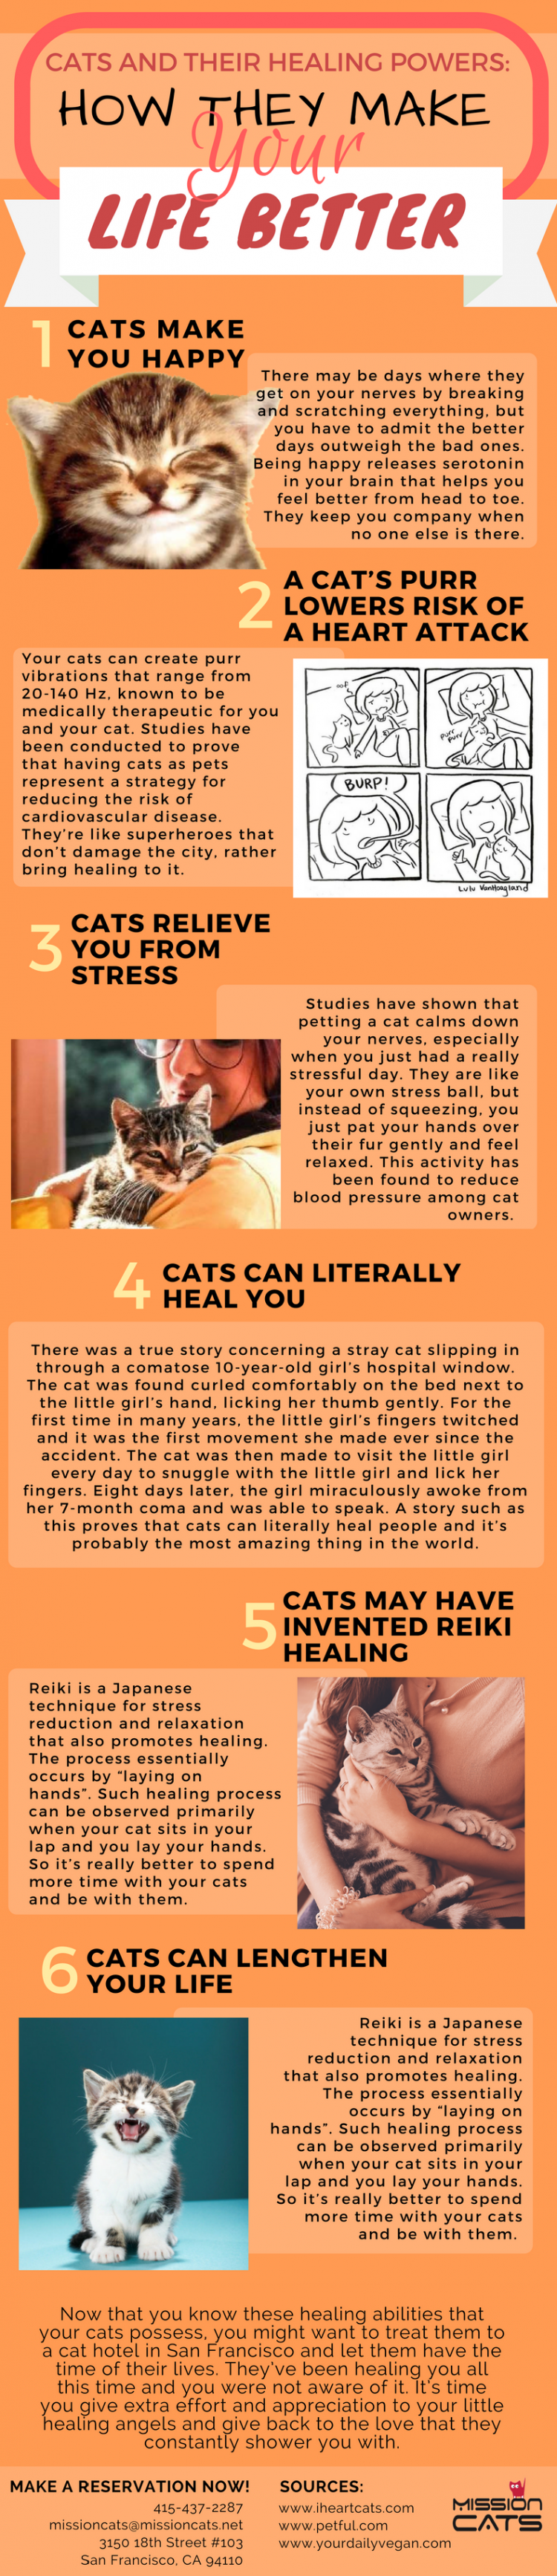 Cats and their Healing Powers: How they Make Your Life Better